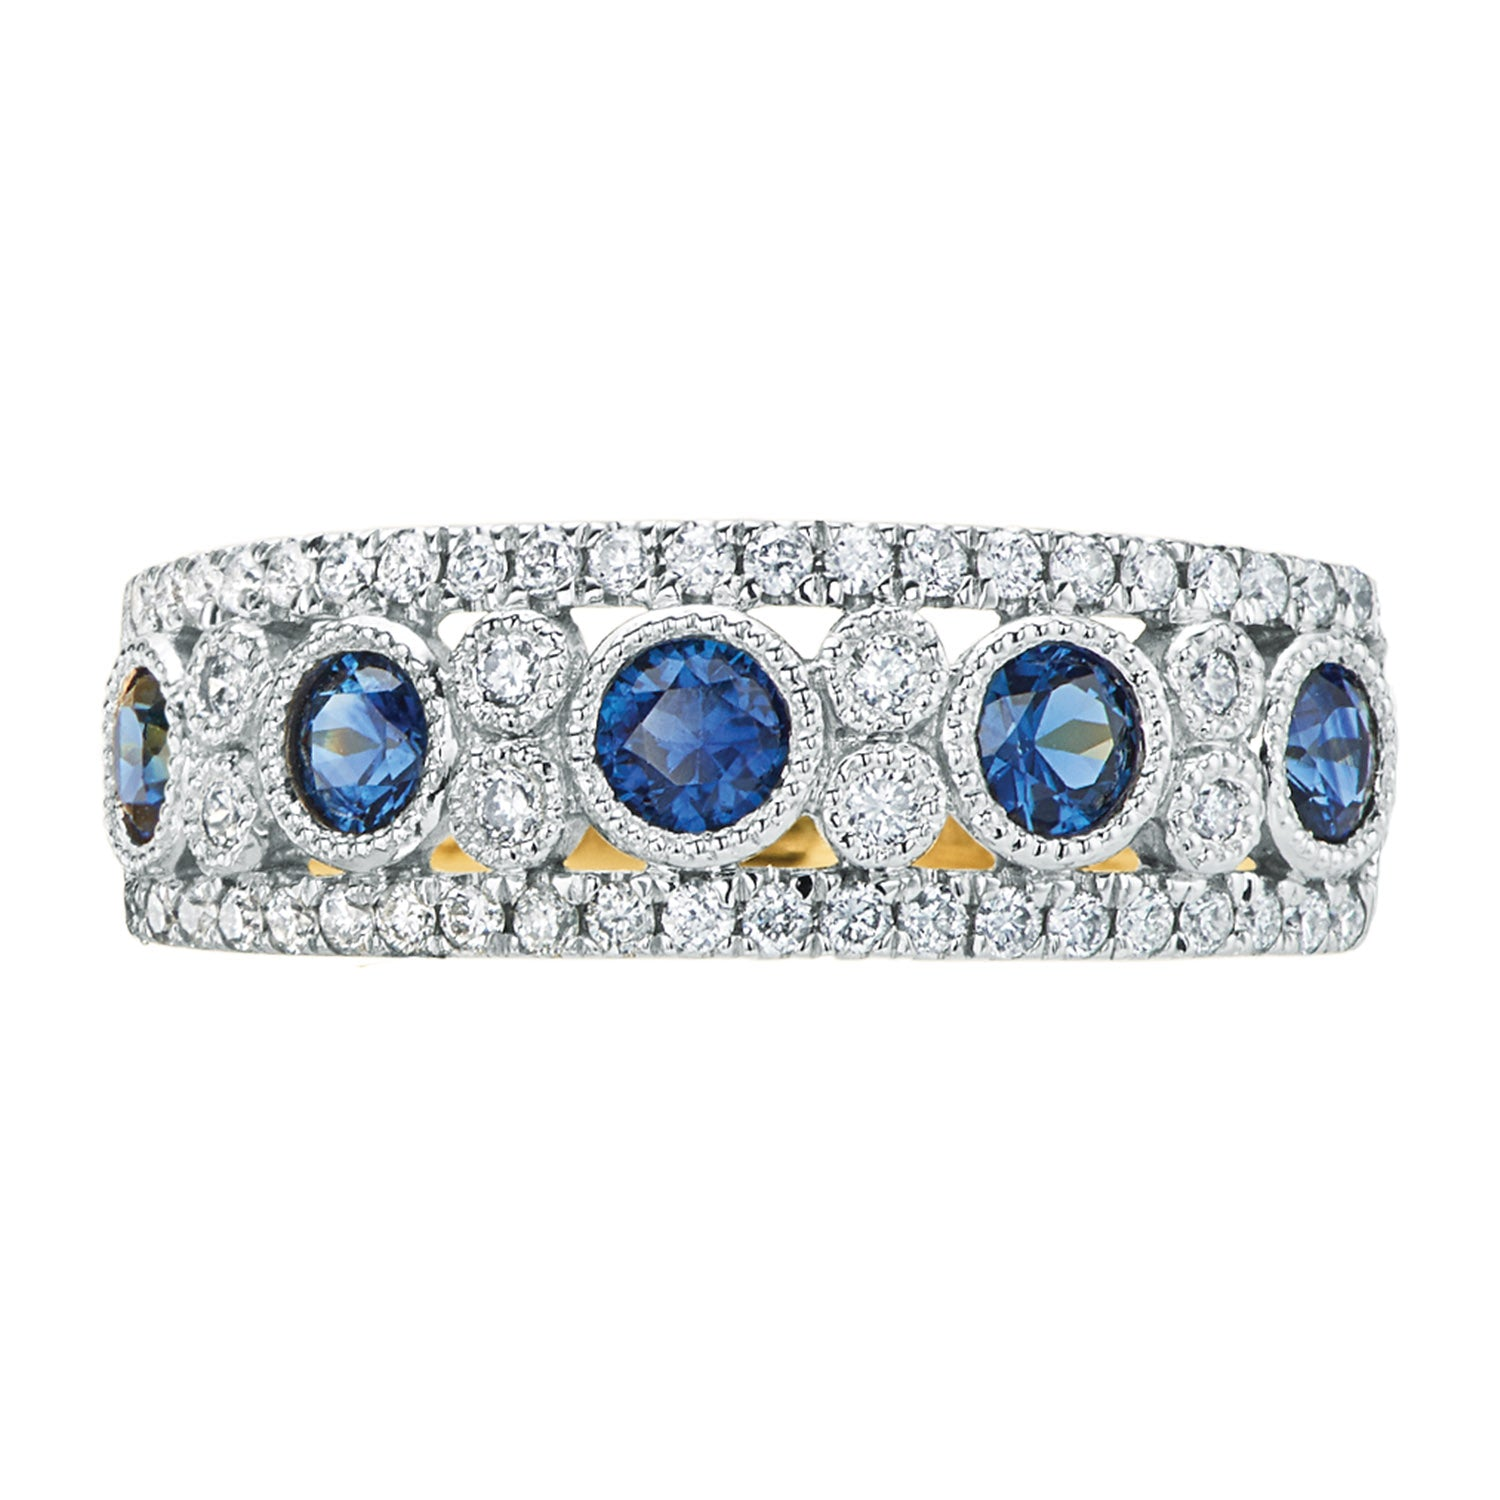 18ct Two Tone Gold Round Brilliant Cut Sapphire with 1/4 CARAT tw of Diamonds